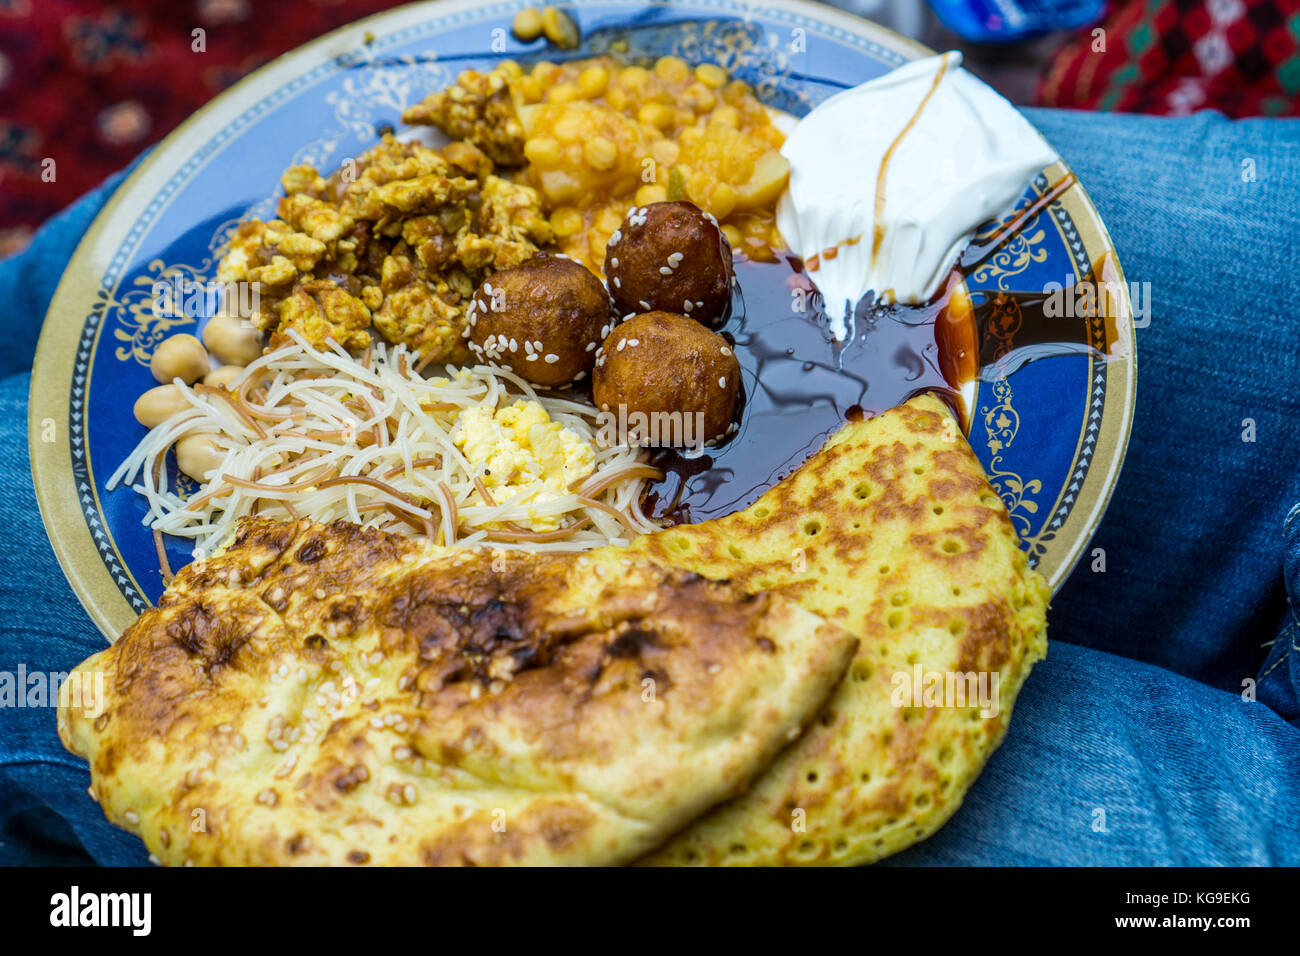 Cultural Breakfast/Lecture - Stock Image